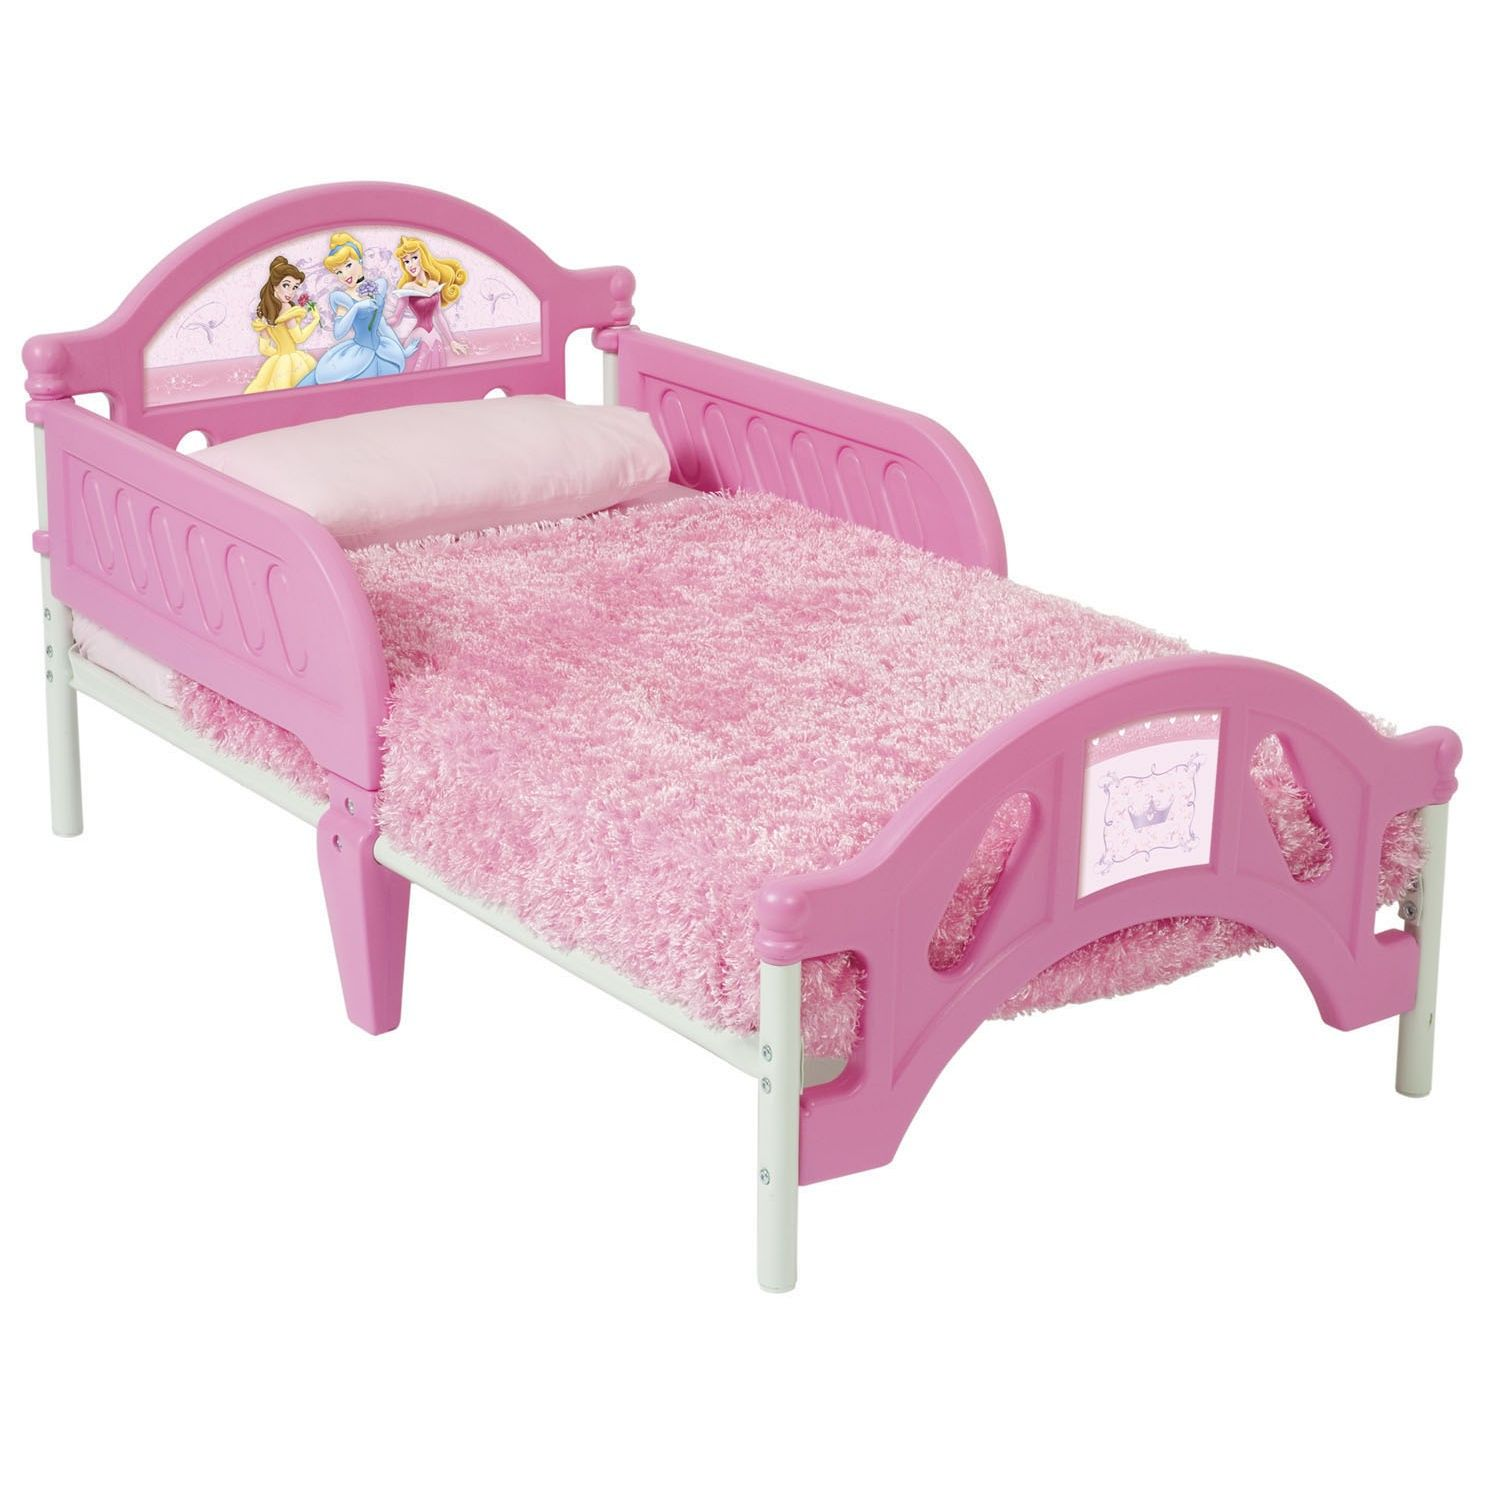 Disney Princess Toddler Bed Set